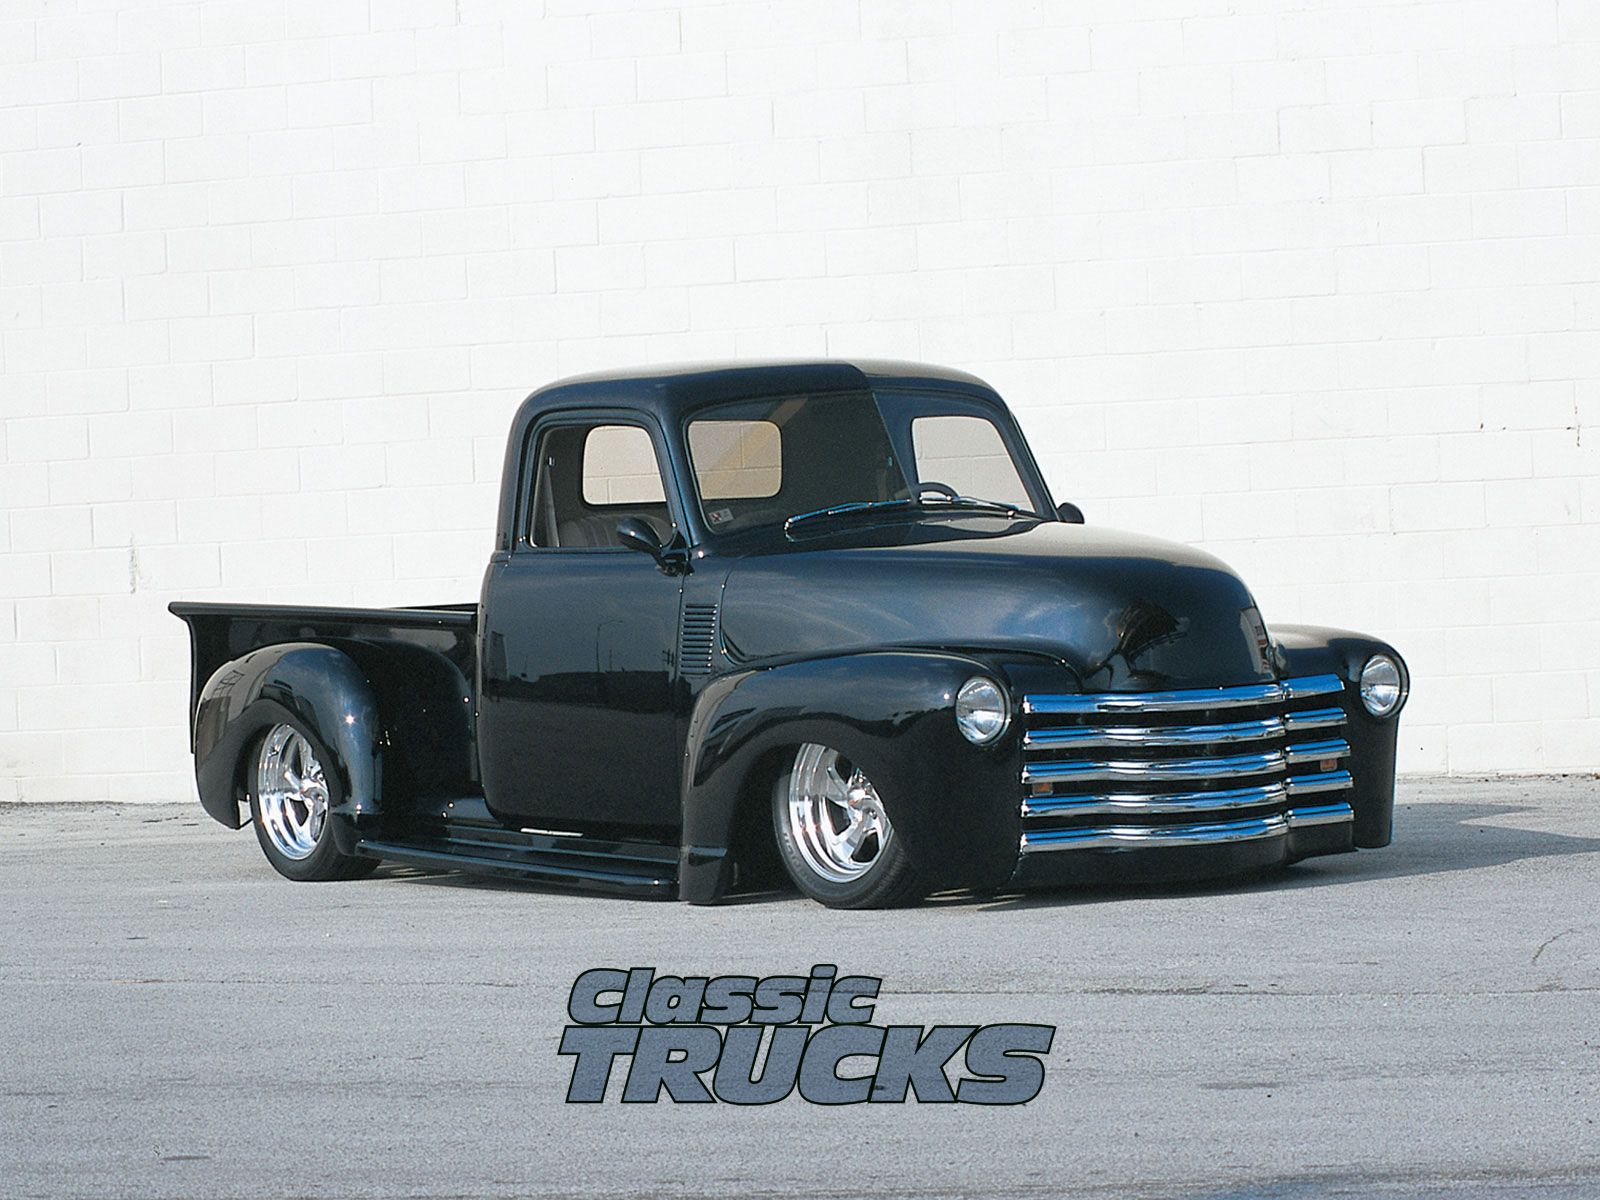 Classic Truck HD Picture Wallpapers 9250   Amazing Wallpaperz 1600x1200